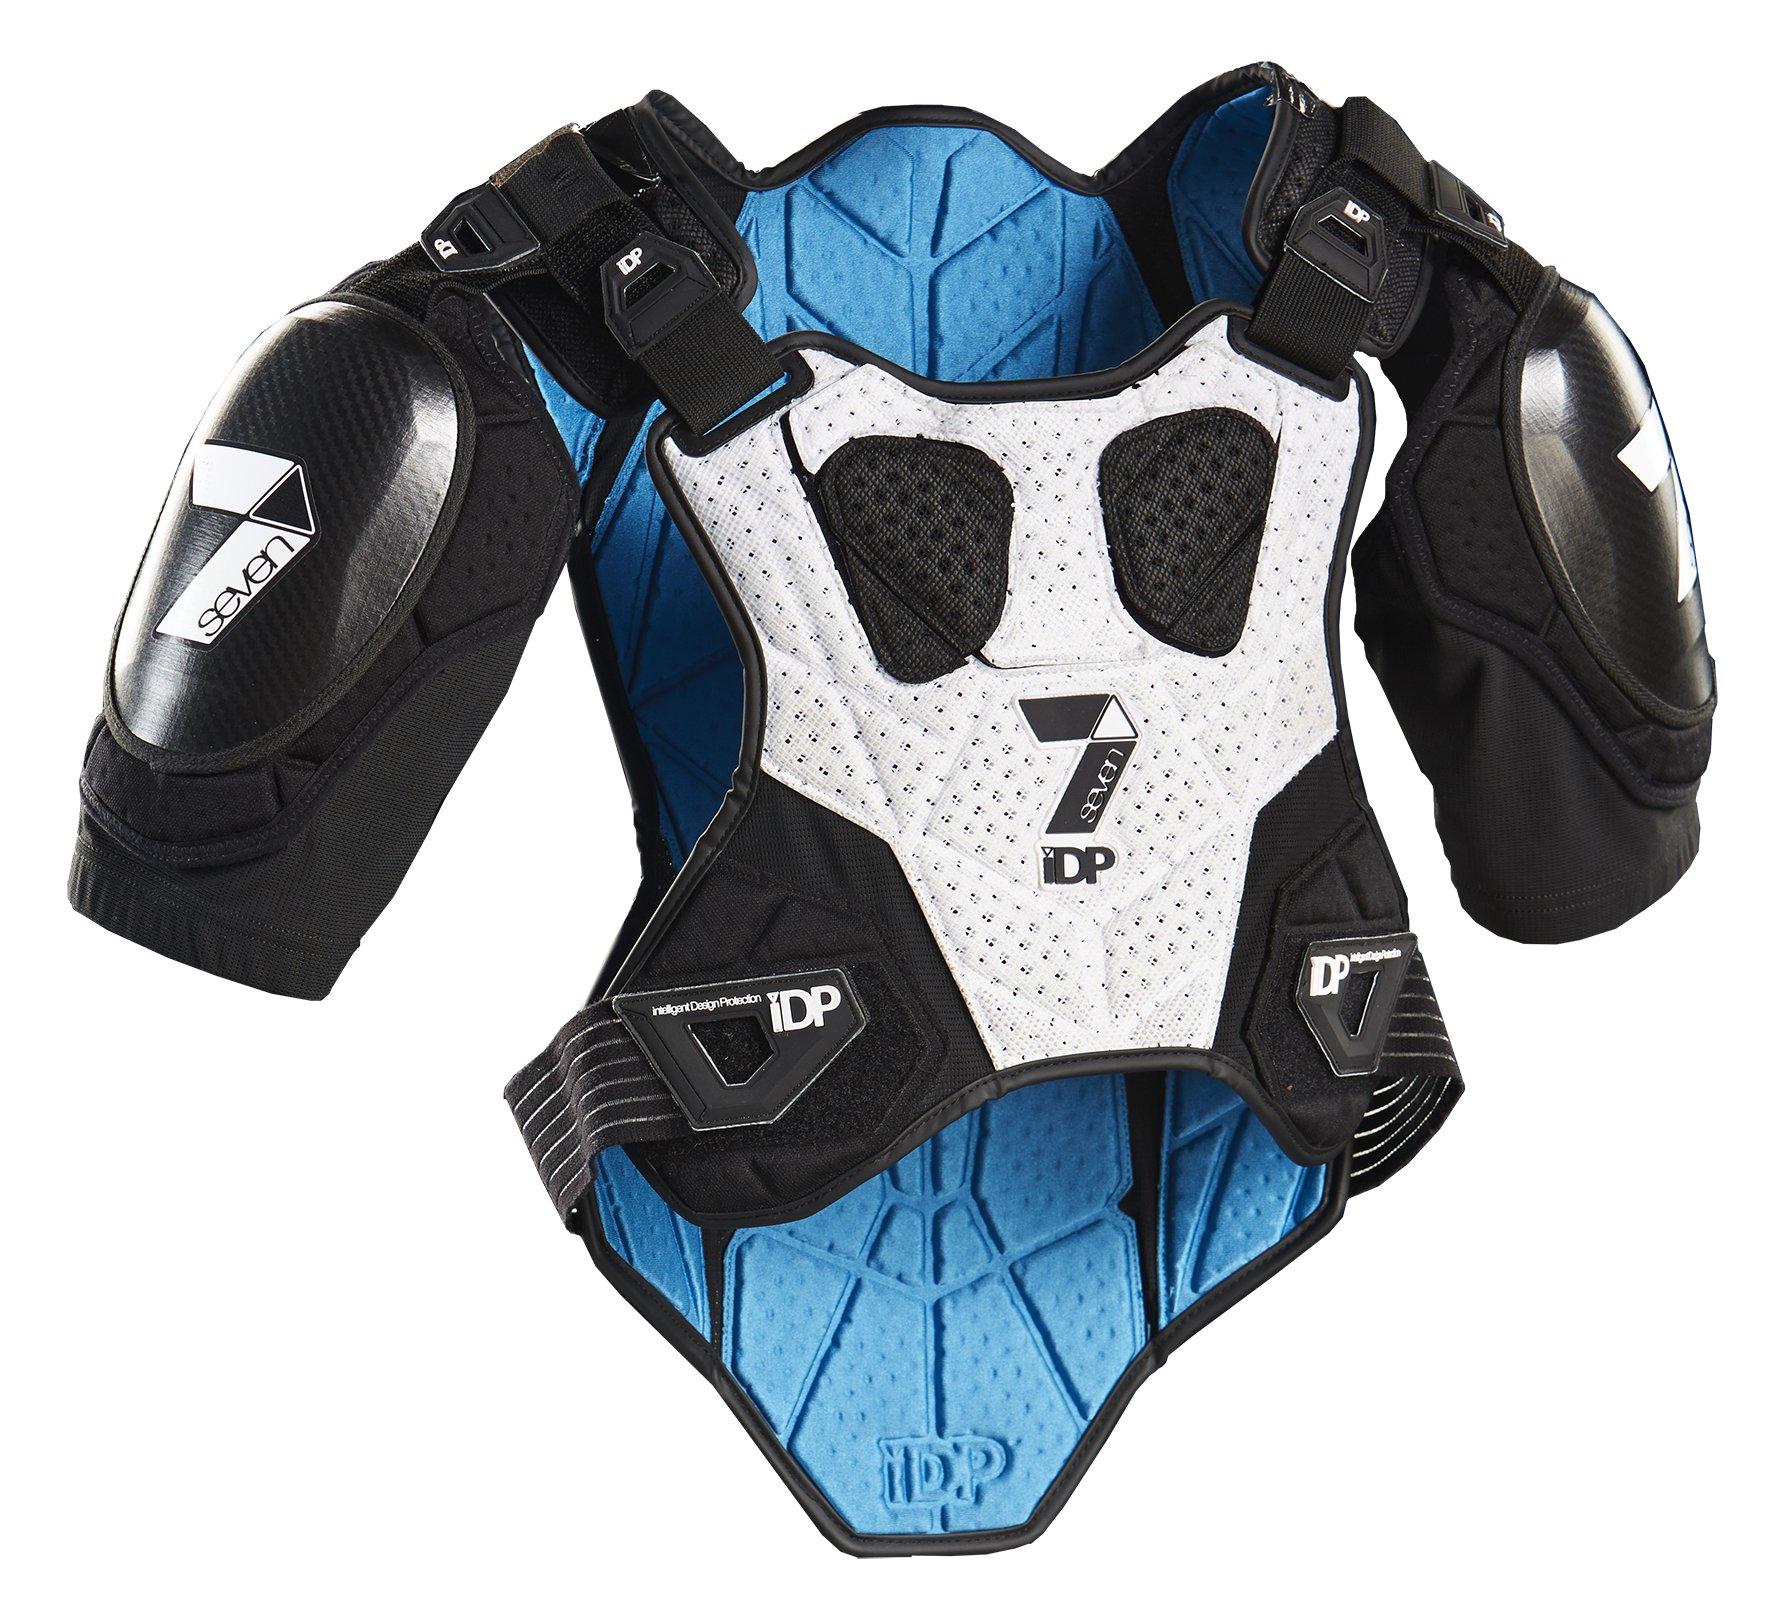 7iDP Control Body Protection, Black, Large/X-Large by 7iDP